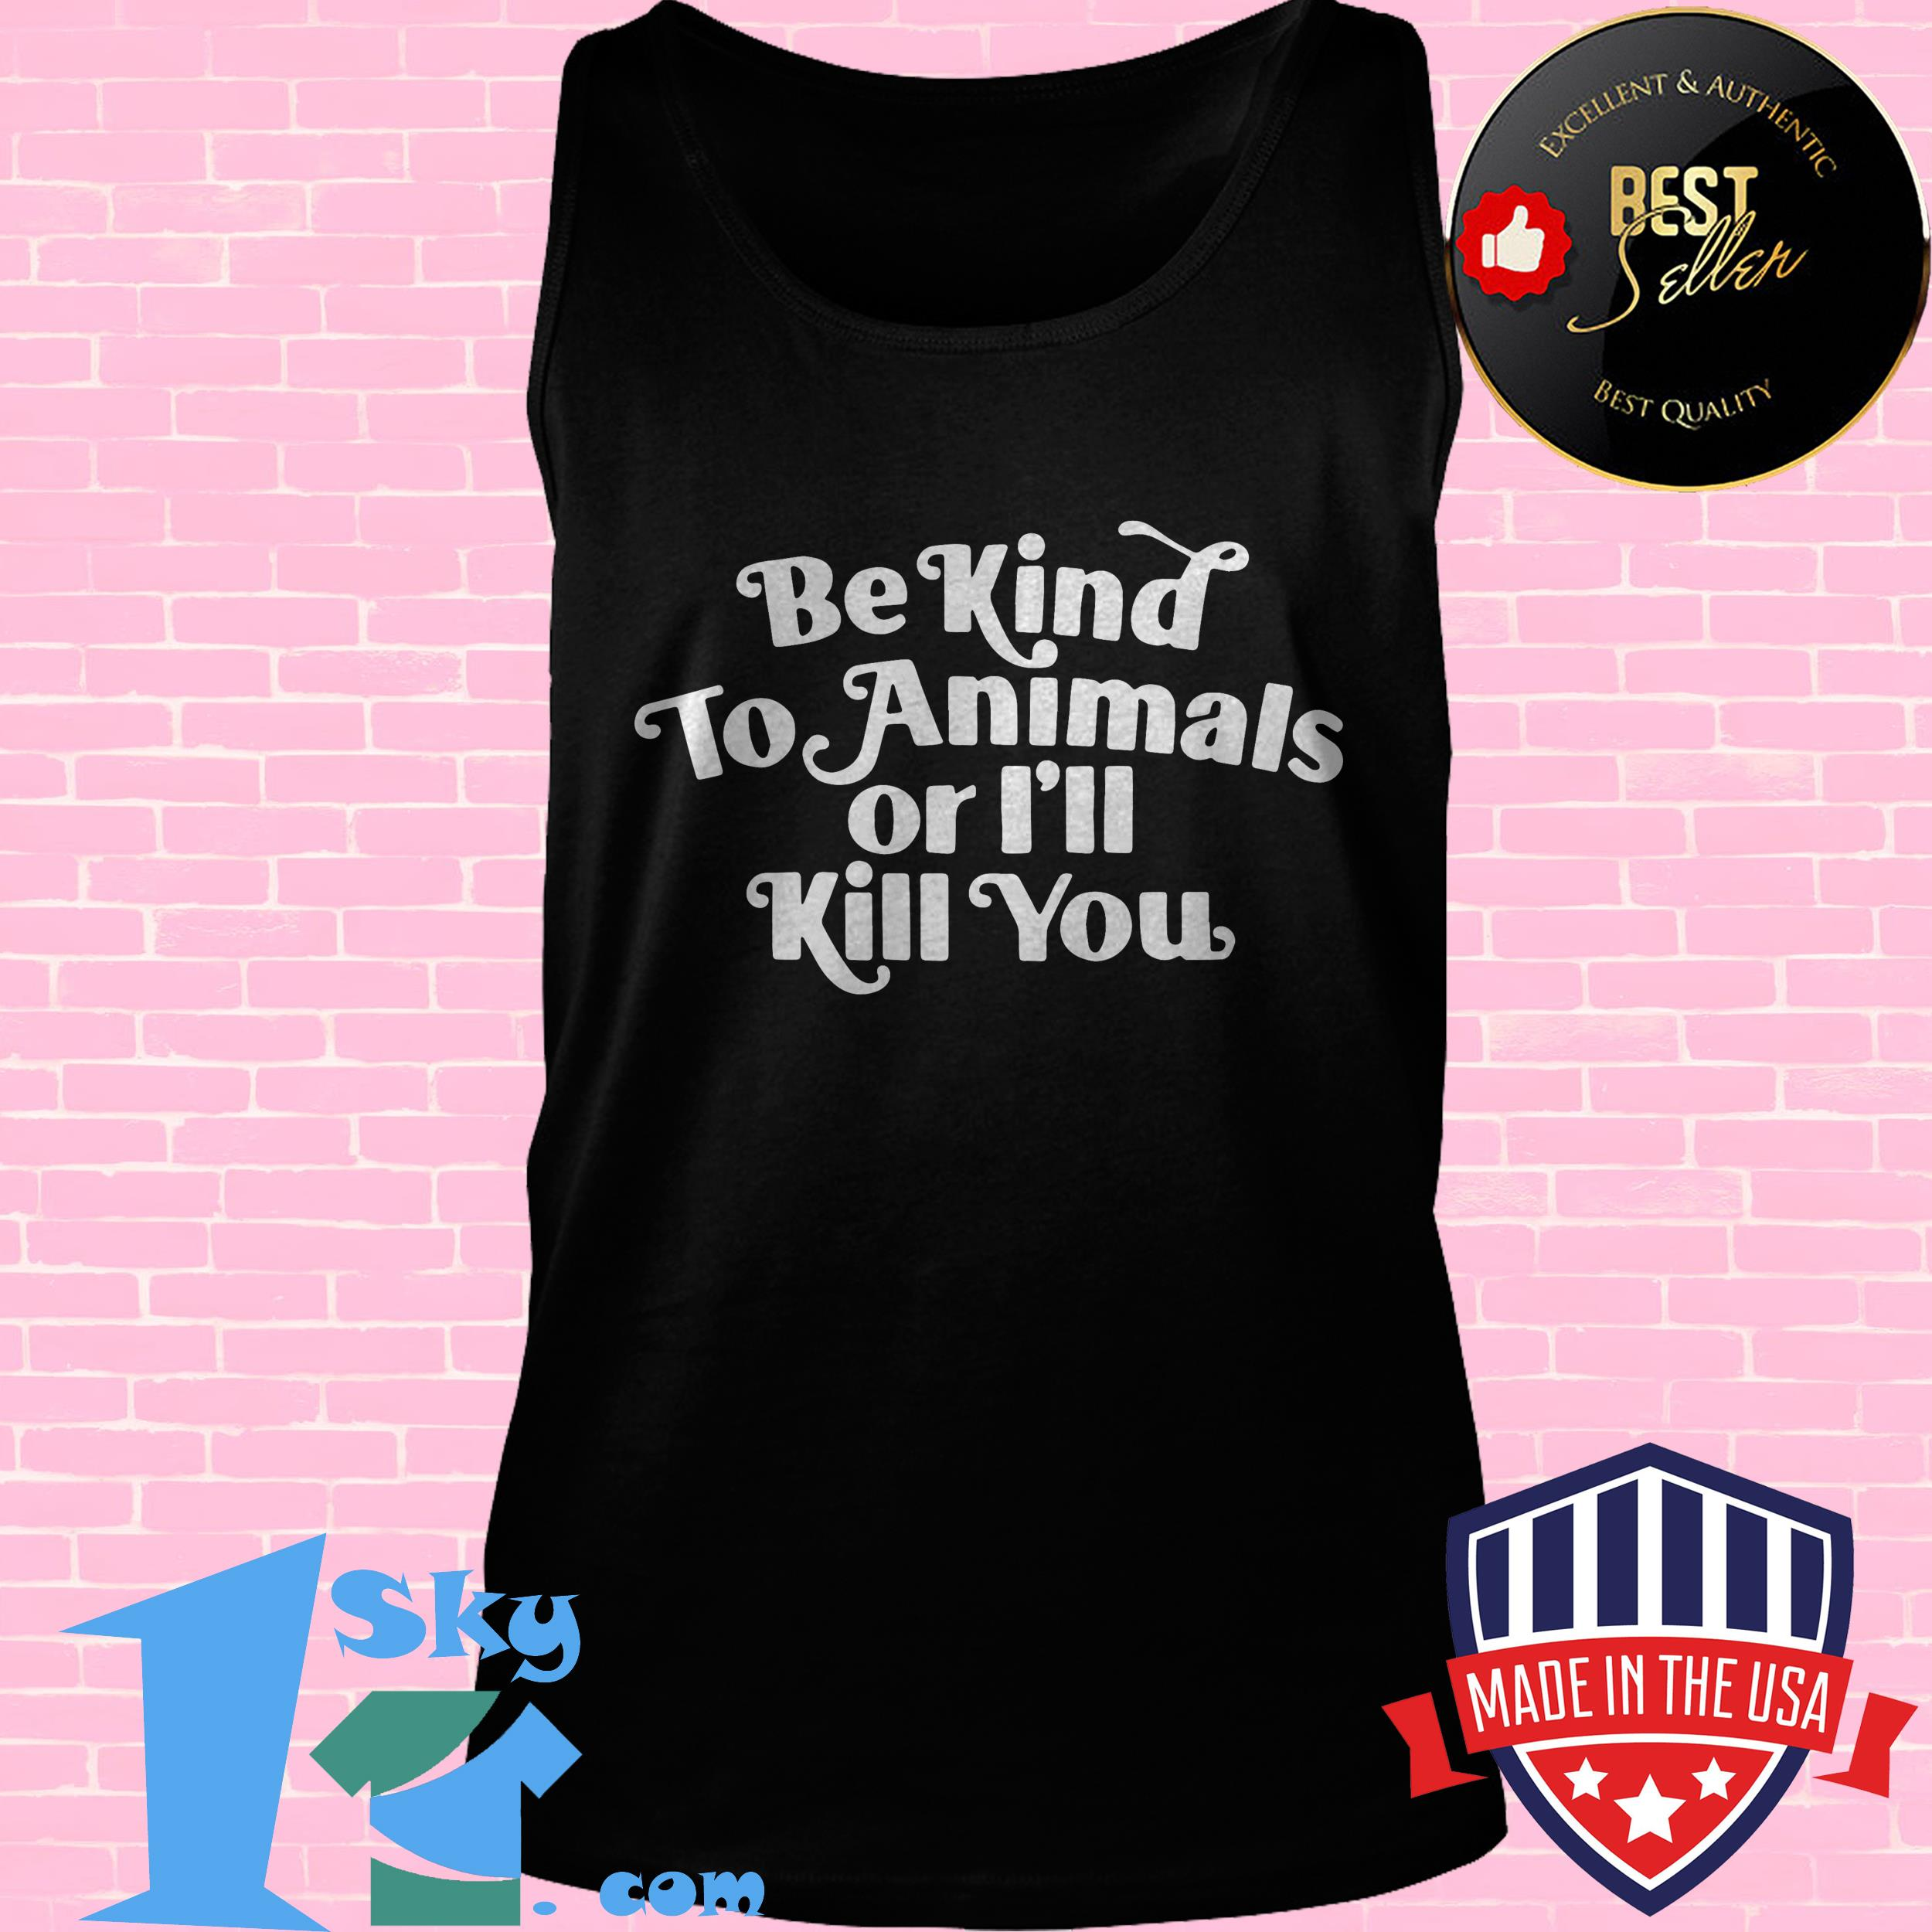 be kind to animal or ill kill you tank top - Be Kind To Animal Or I'll Kill You shirt